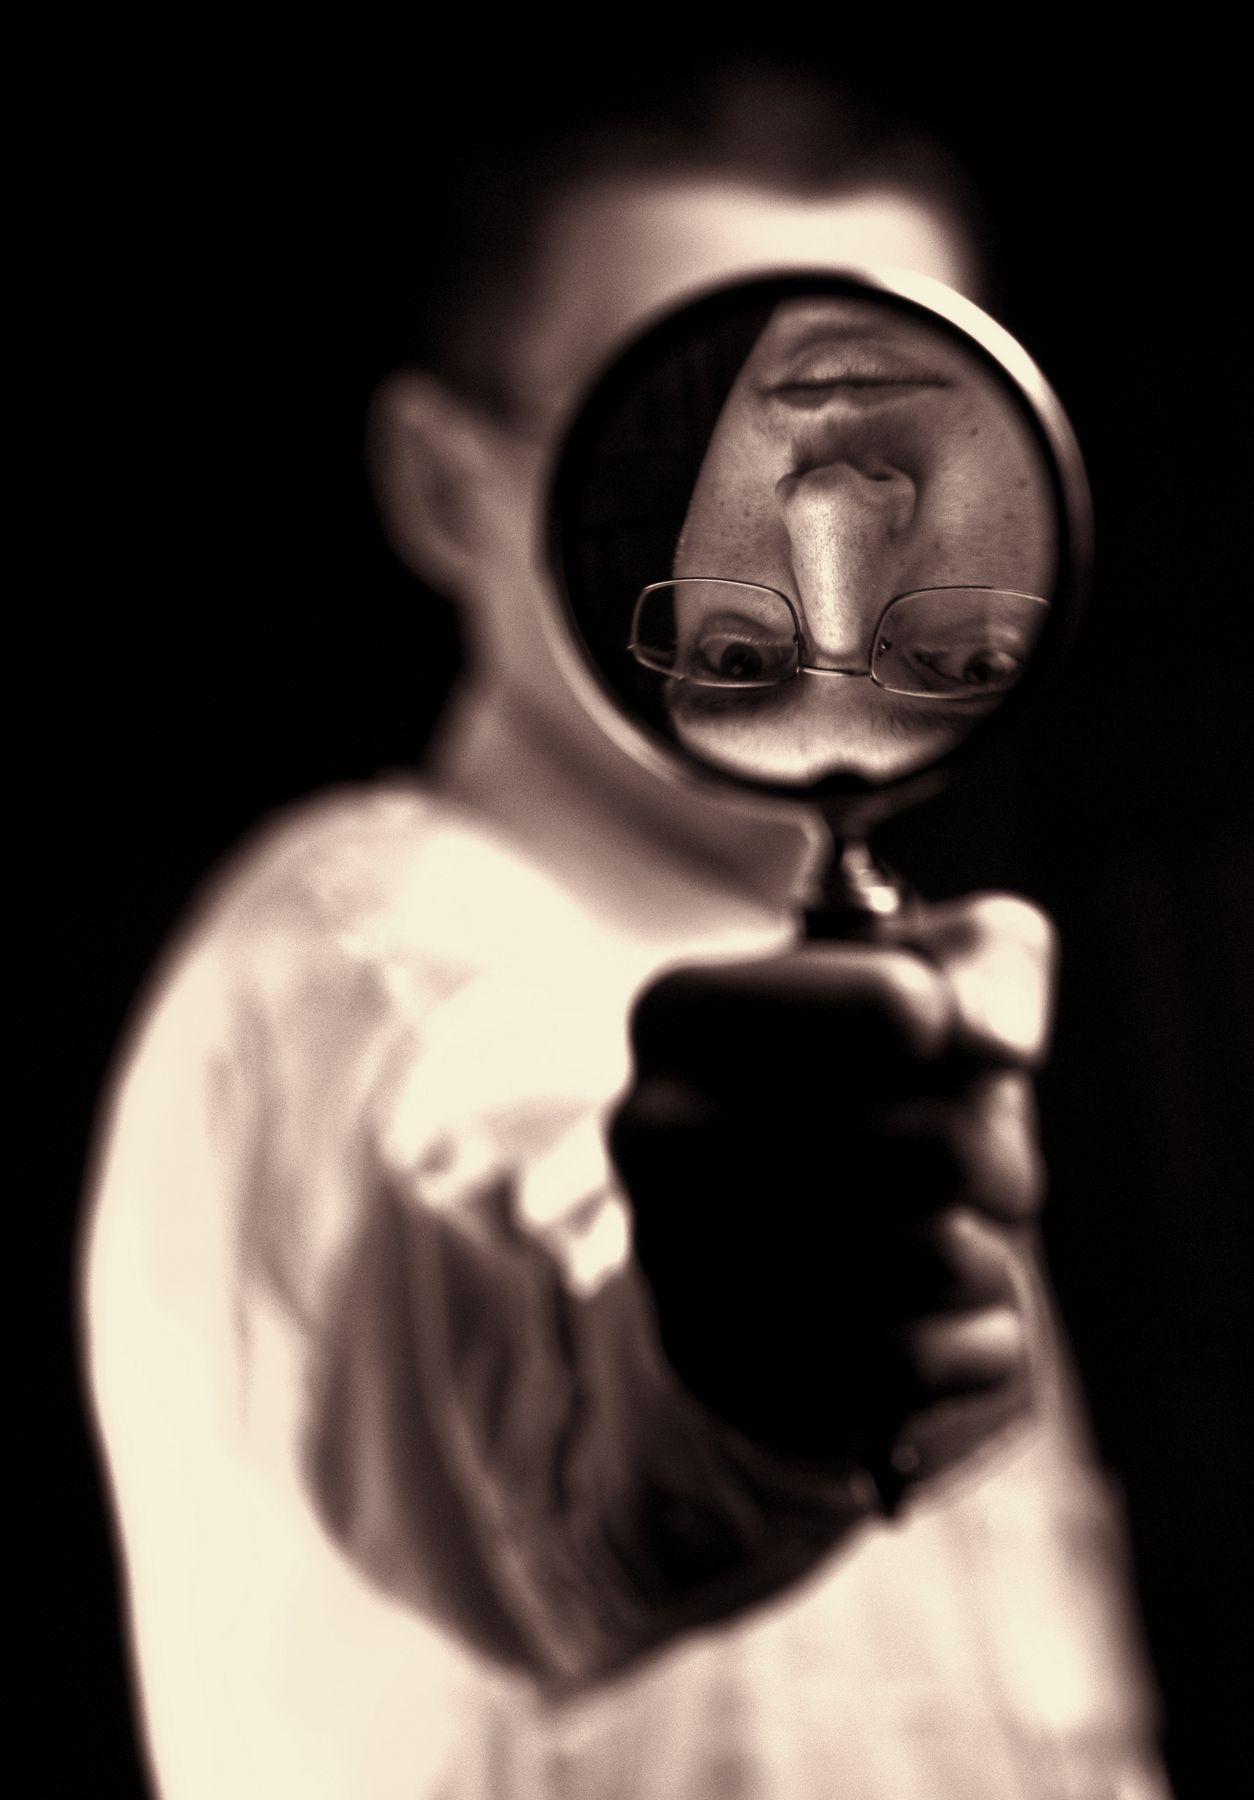 """""""Kenz magnified"""" photograph by Steven Smith (2012). Licensed under CC BY 2.0. Original location here."""